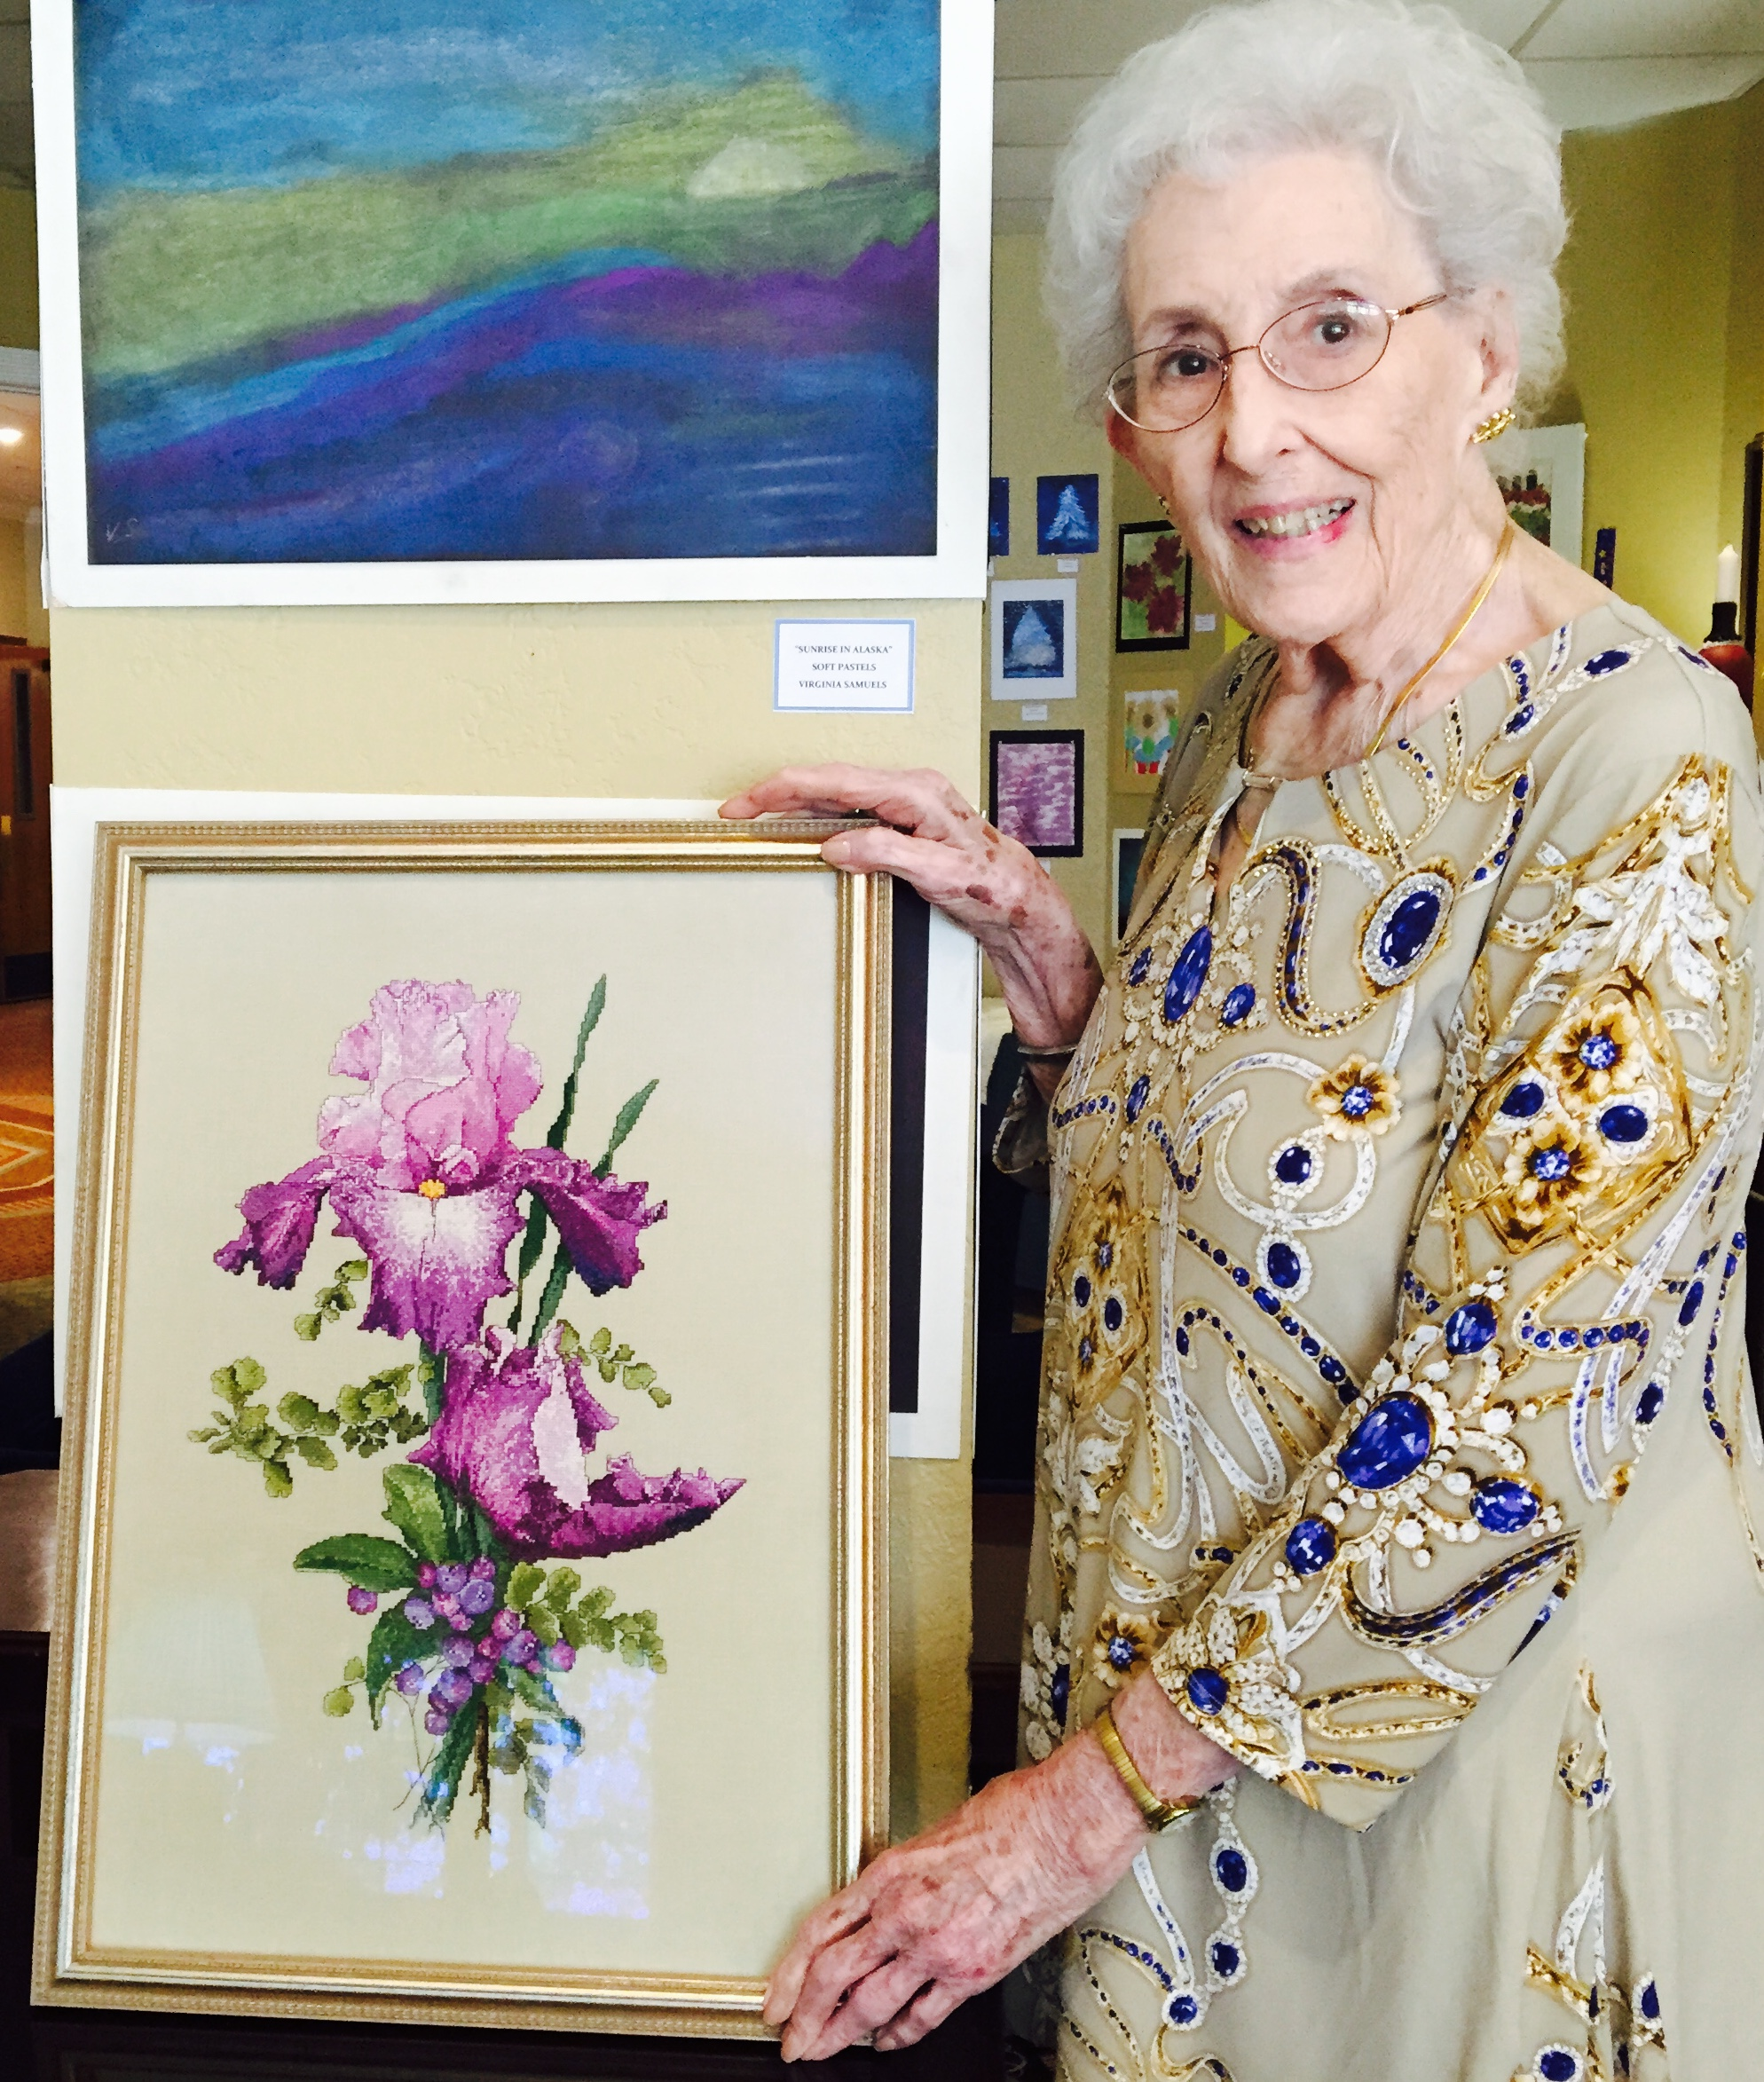 art-show-with-betty-hatcher-and-her-purple-iris